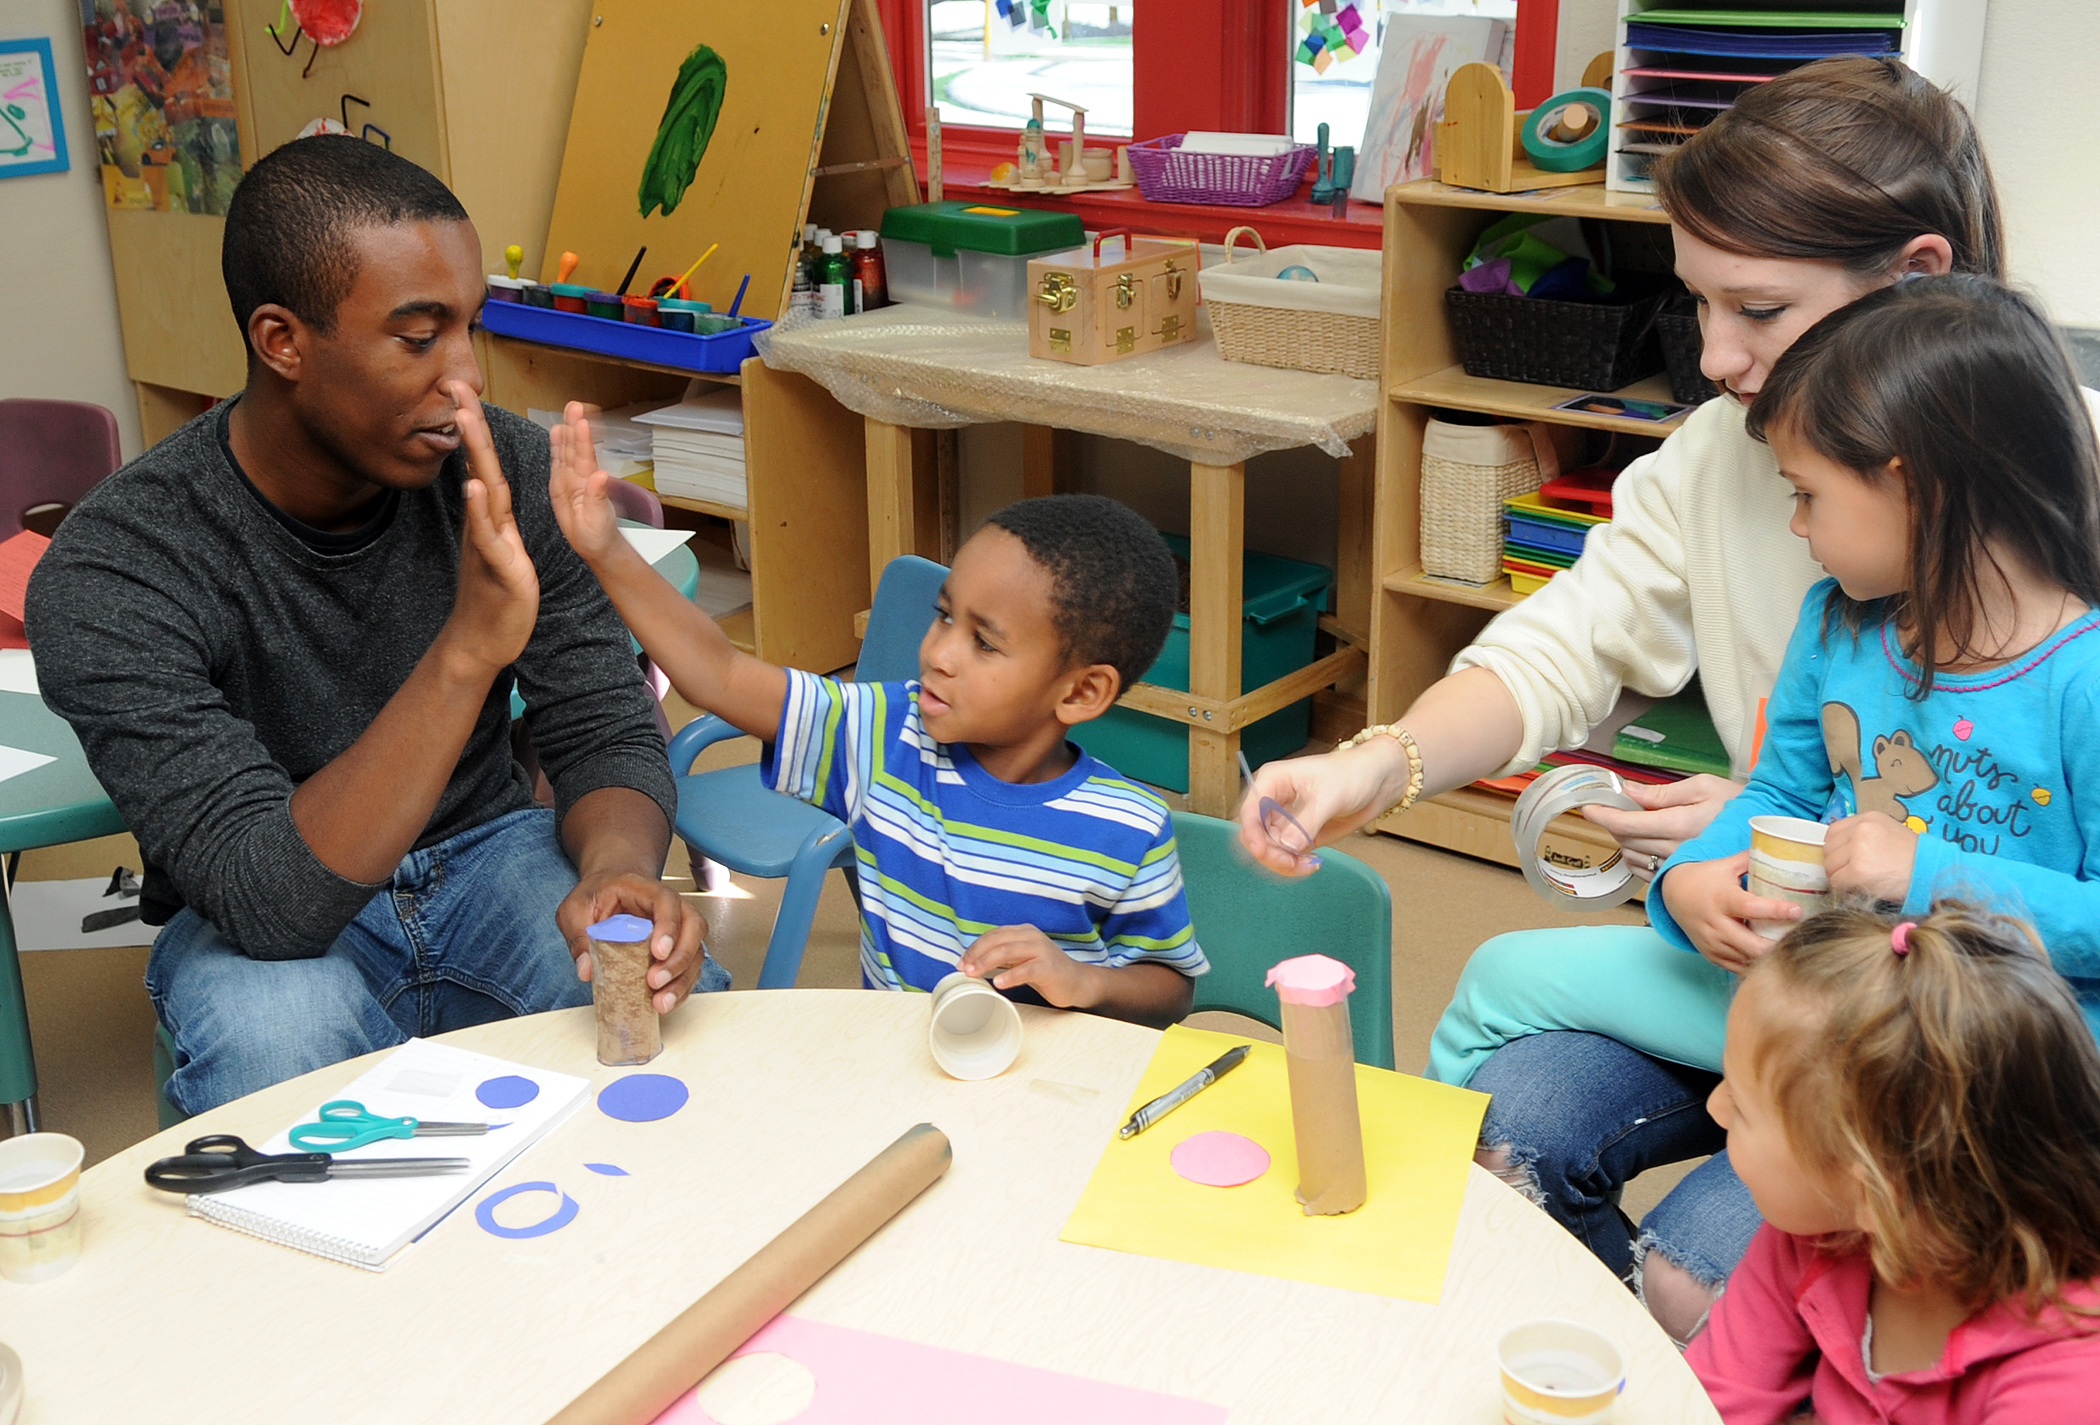 Children with healthy self-esteem are willing to try new tasks.